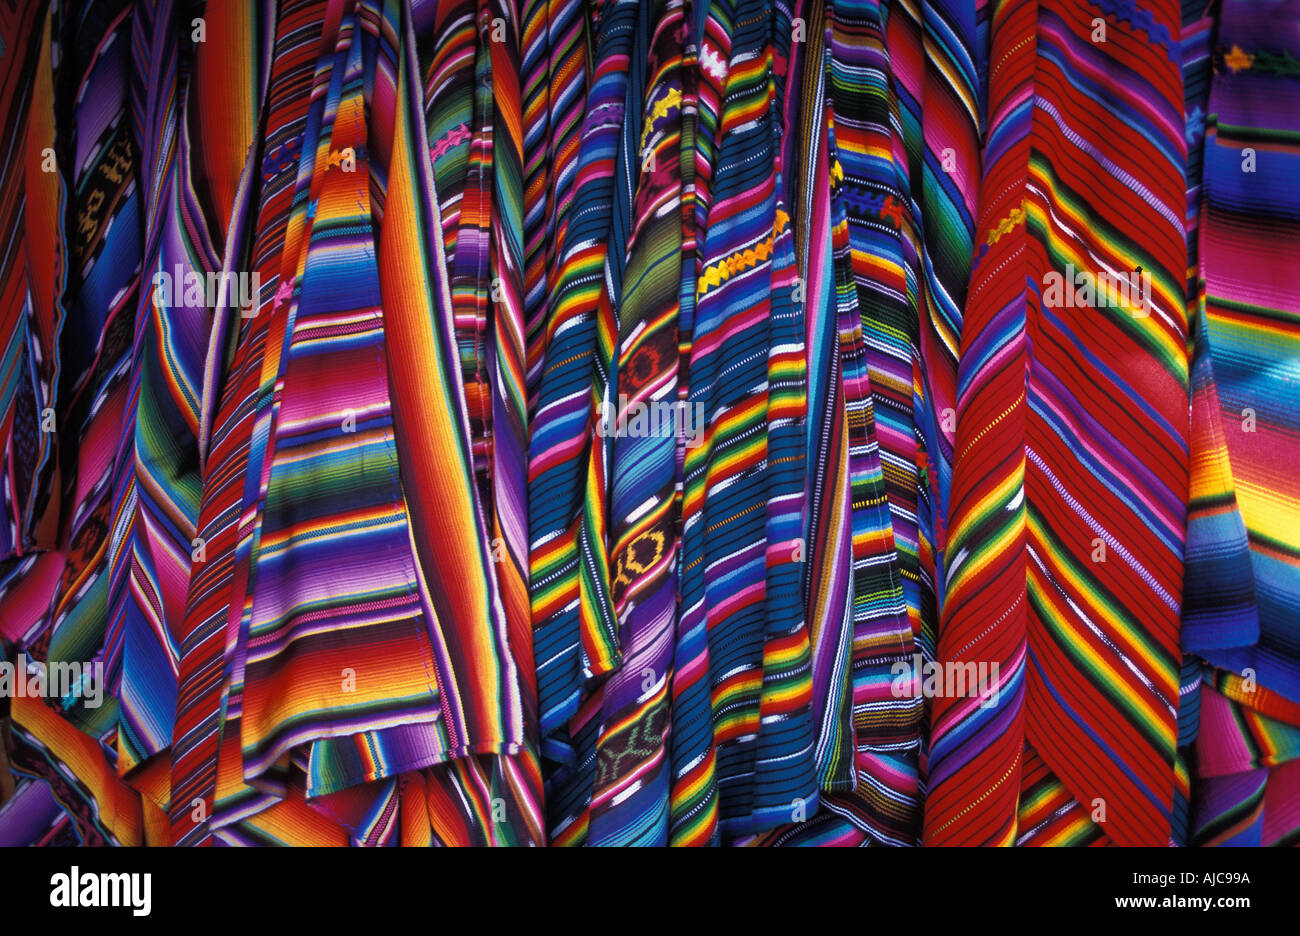 Selection of brightly coloured woven shawls zutes for sale at market Chichicastenango Guatemala Stock Photo